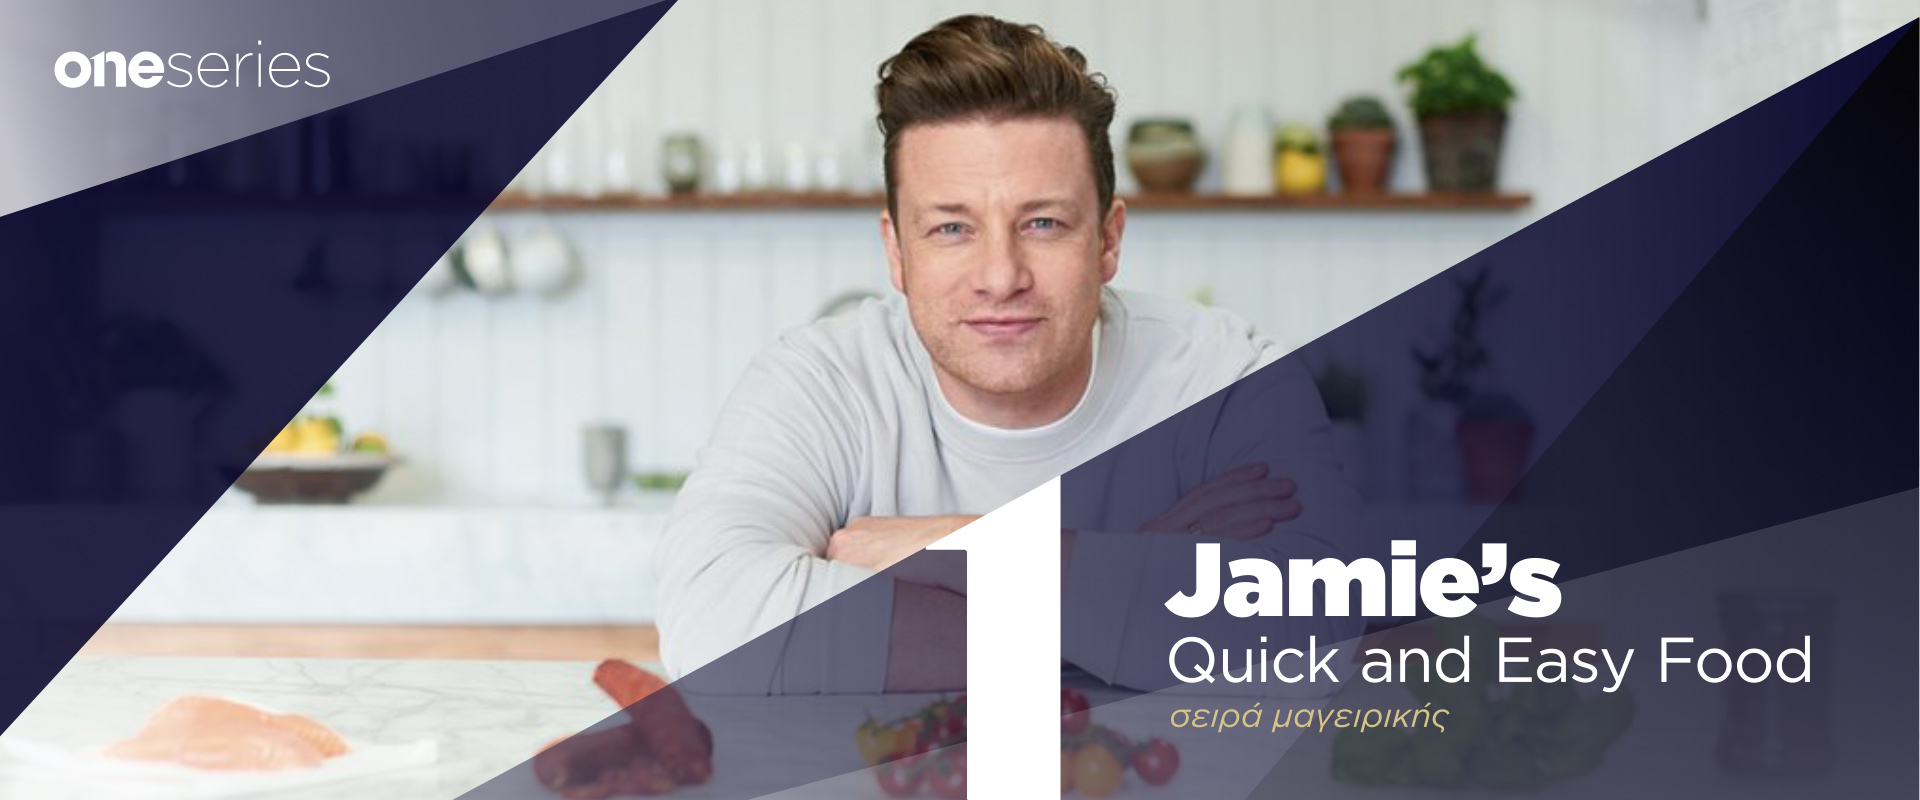 Jaimie's Quick and Easy Food